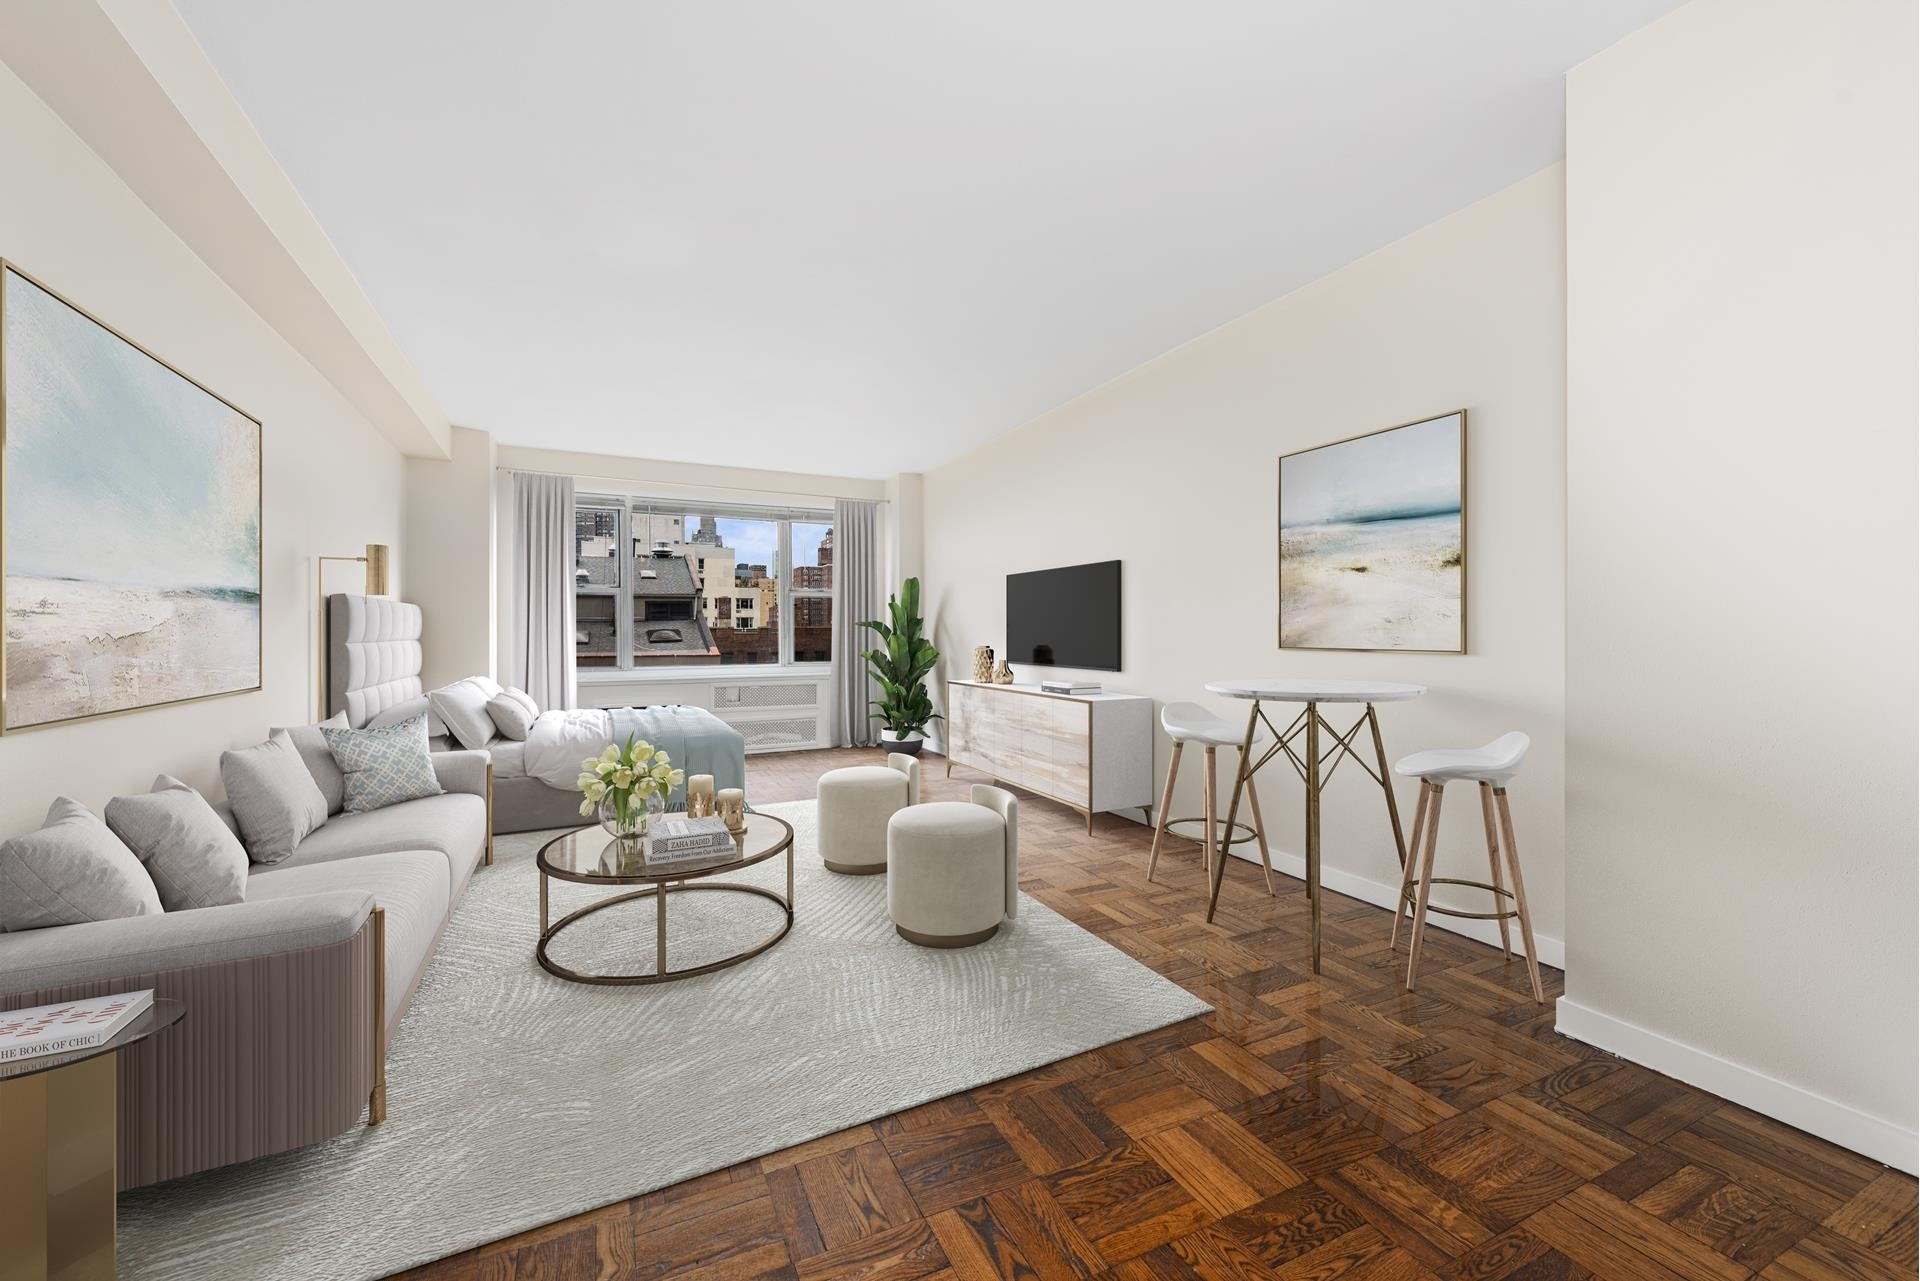 Property в The Gregory House, 440 E 79TH ST , 8I Верхняя Ист-Сайд, New York, NY 10075